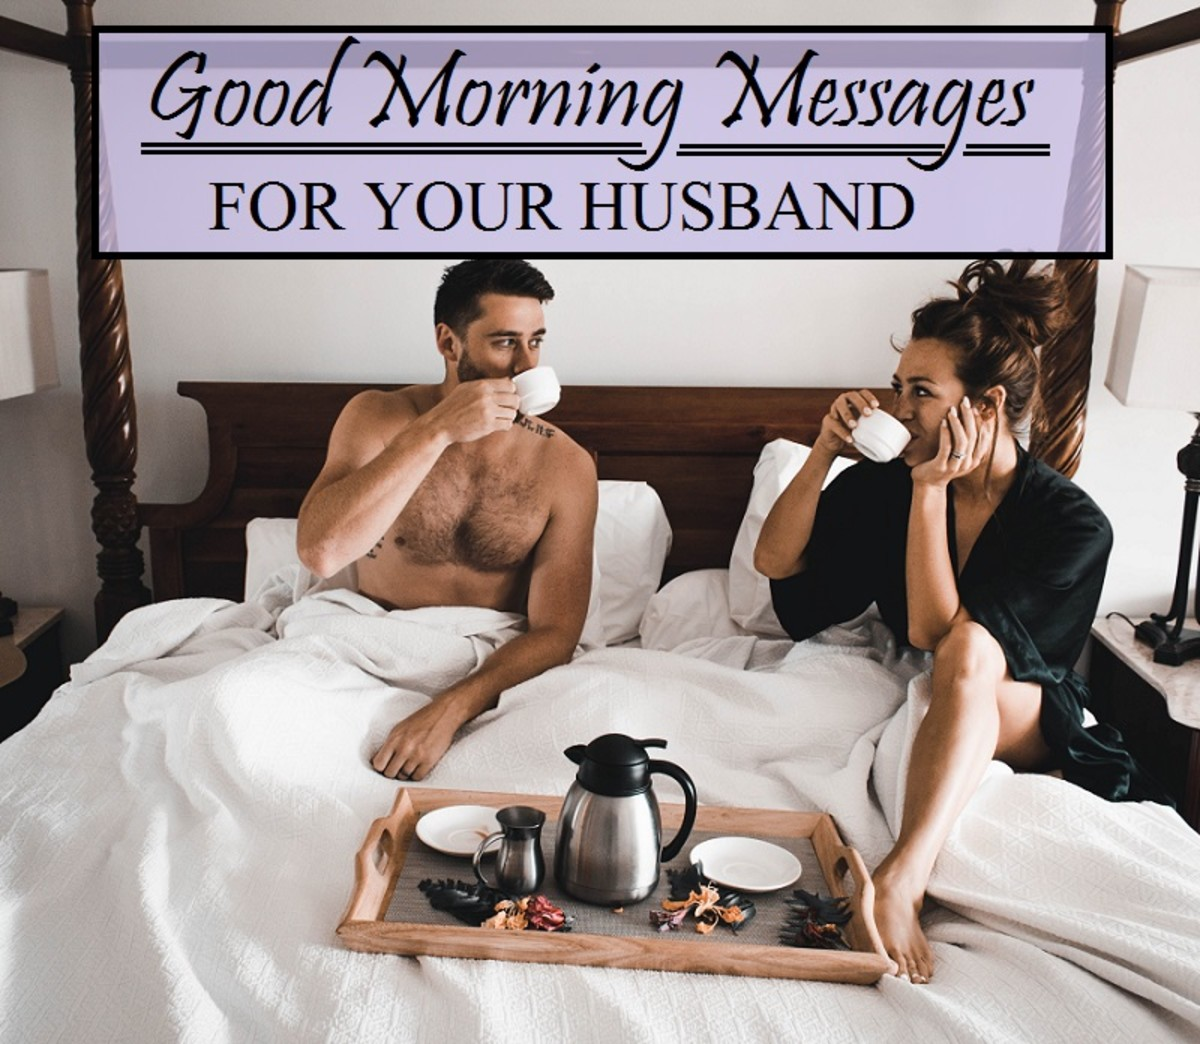 Sweet Good Morning Messages for Your Husband